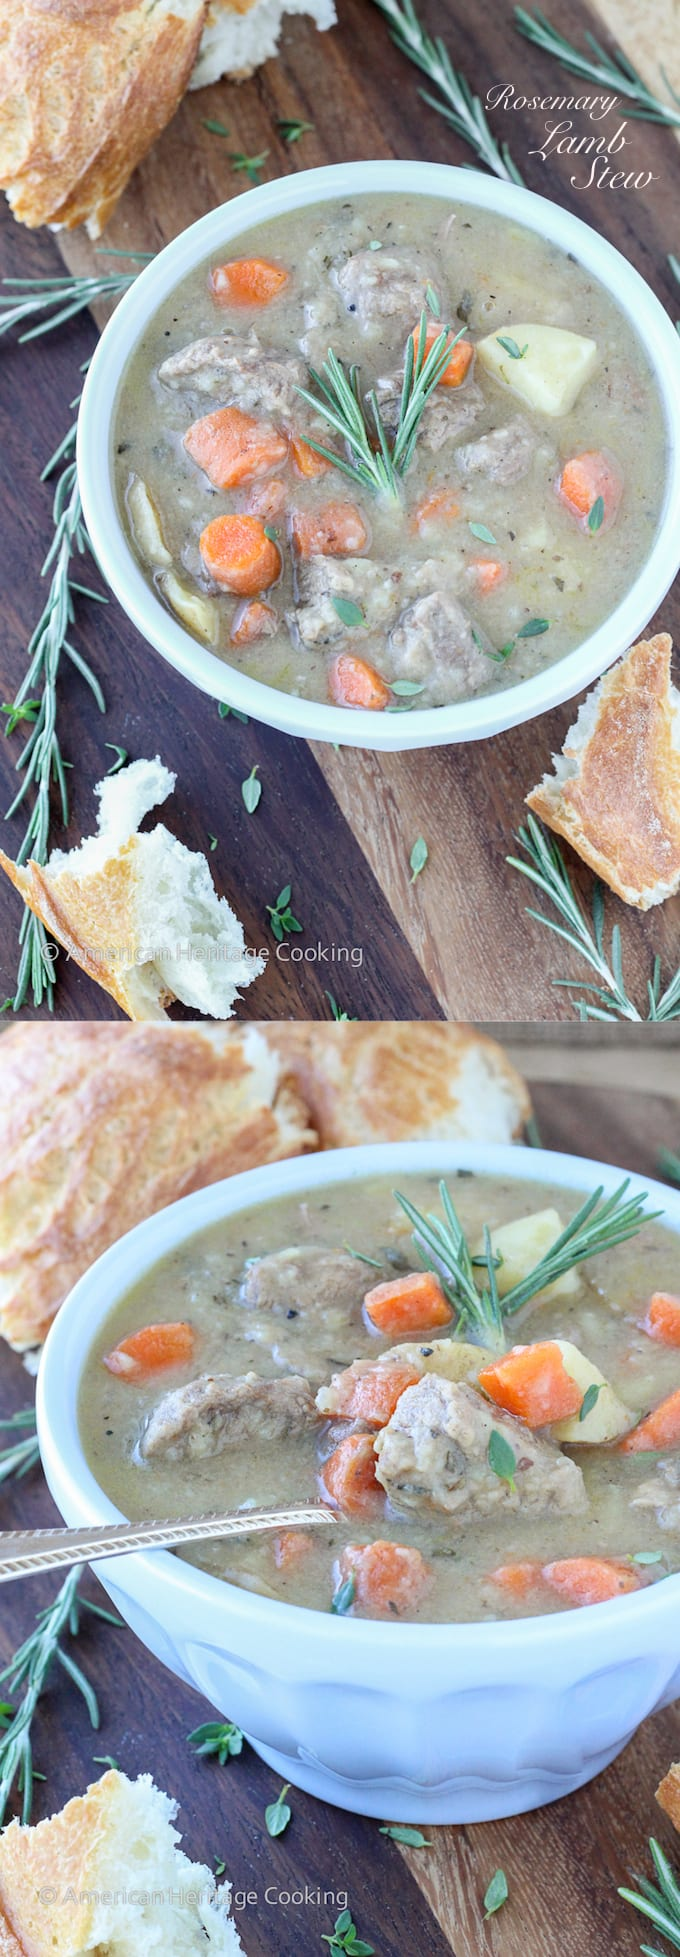 A hearty Rosemary Lamb Stew recipe to warm you up this winter! Filling and healthy!